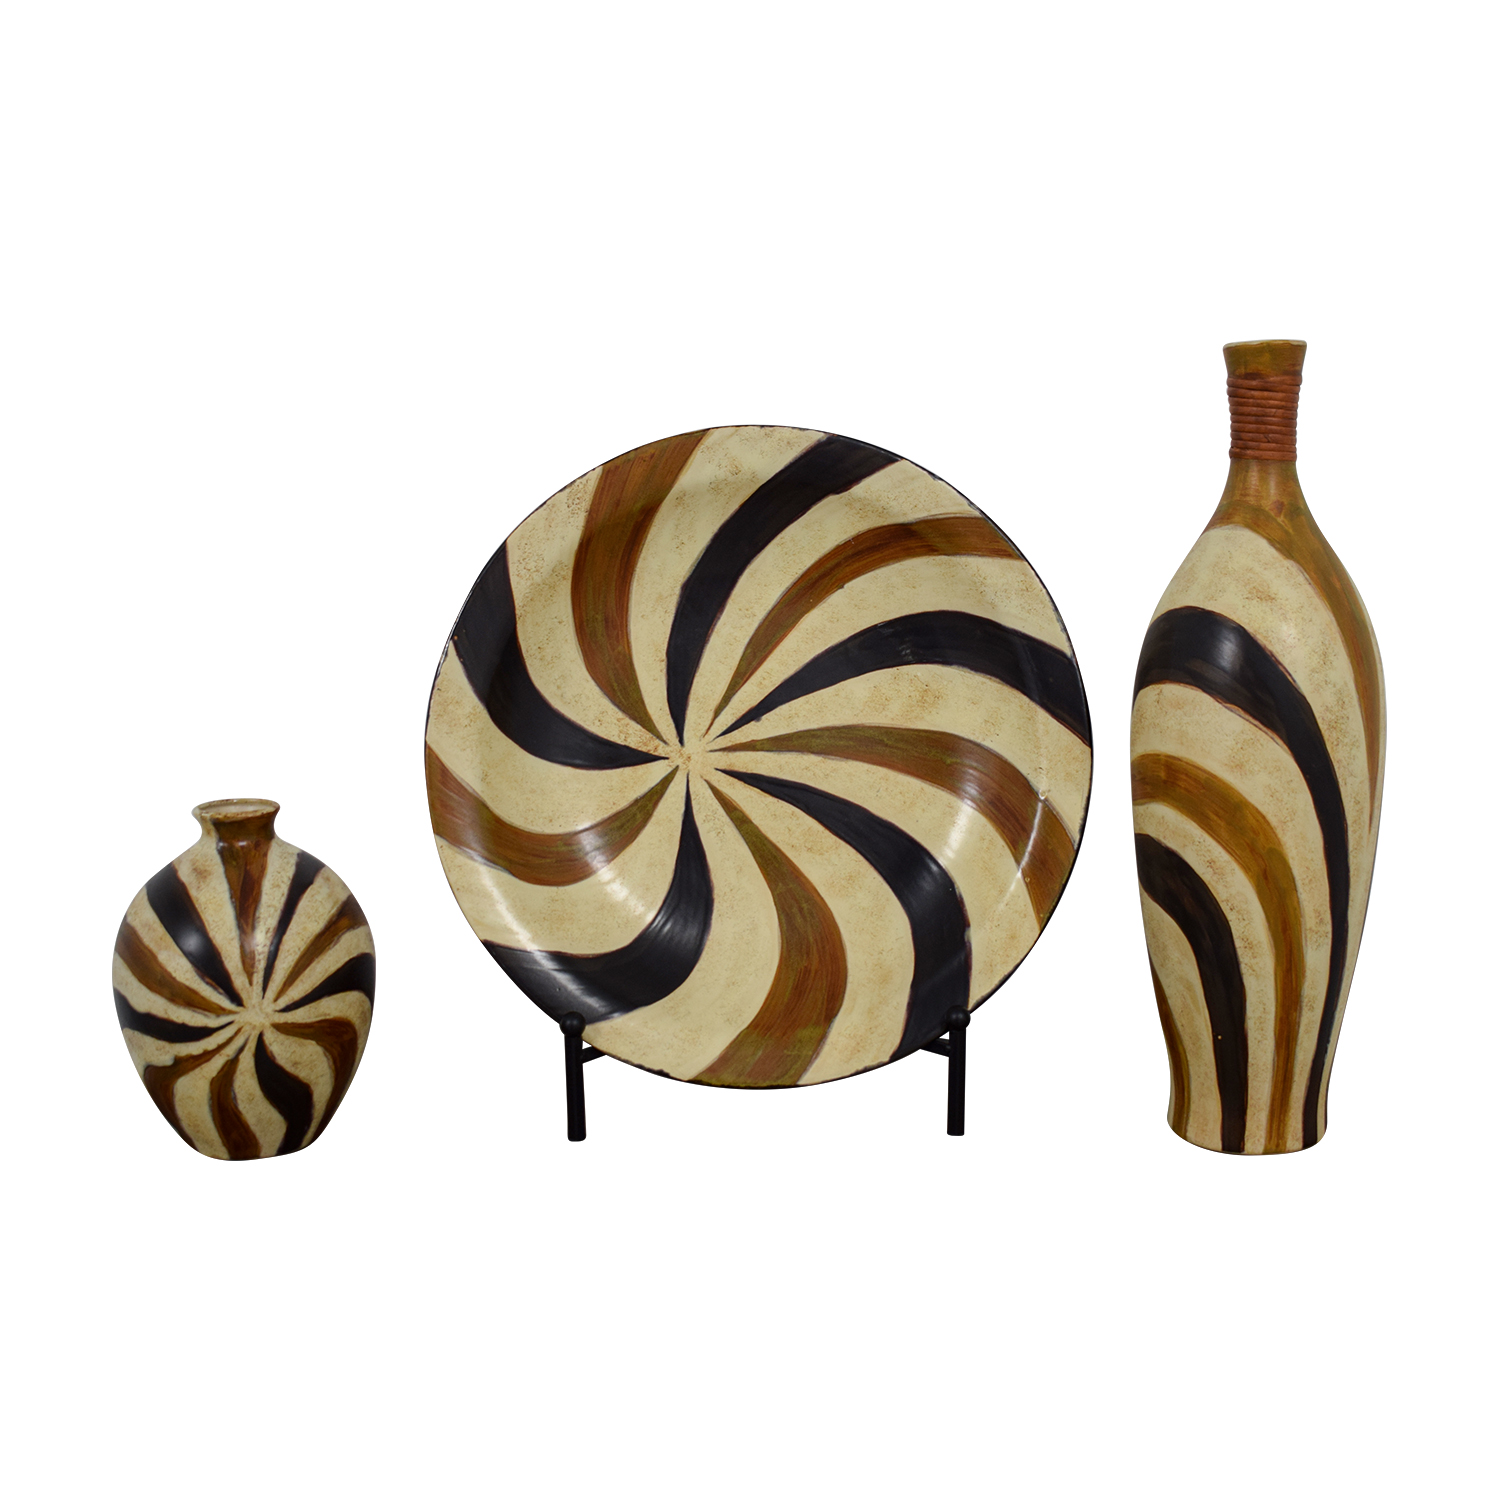 shop HomeGoods HomeGoods Earth Toned Ceramic Plate and Vases online